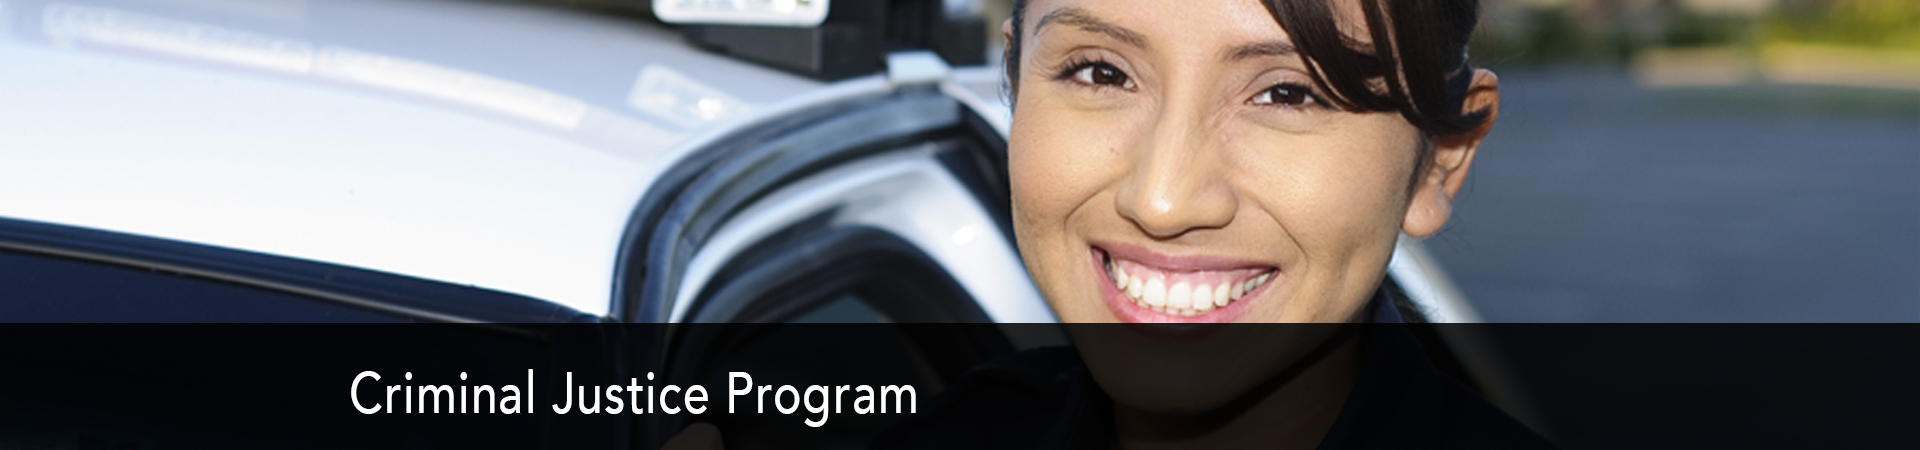 Explore the Criminal Justice Program at NC